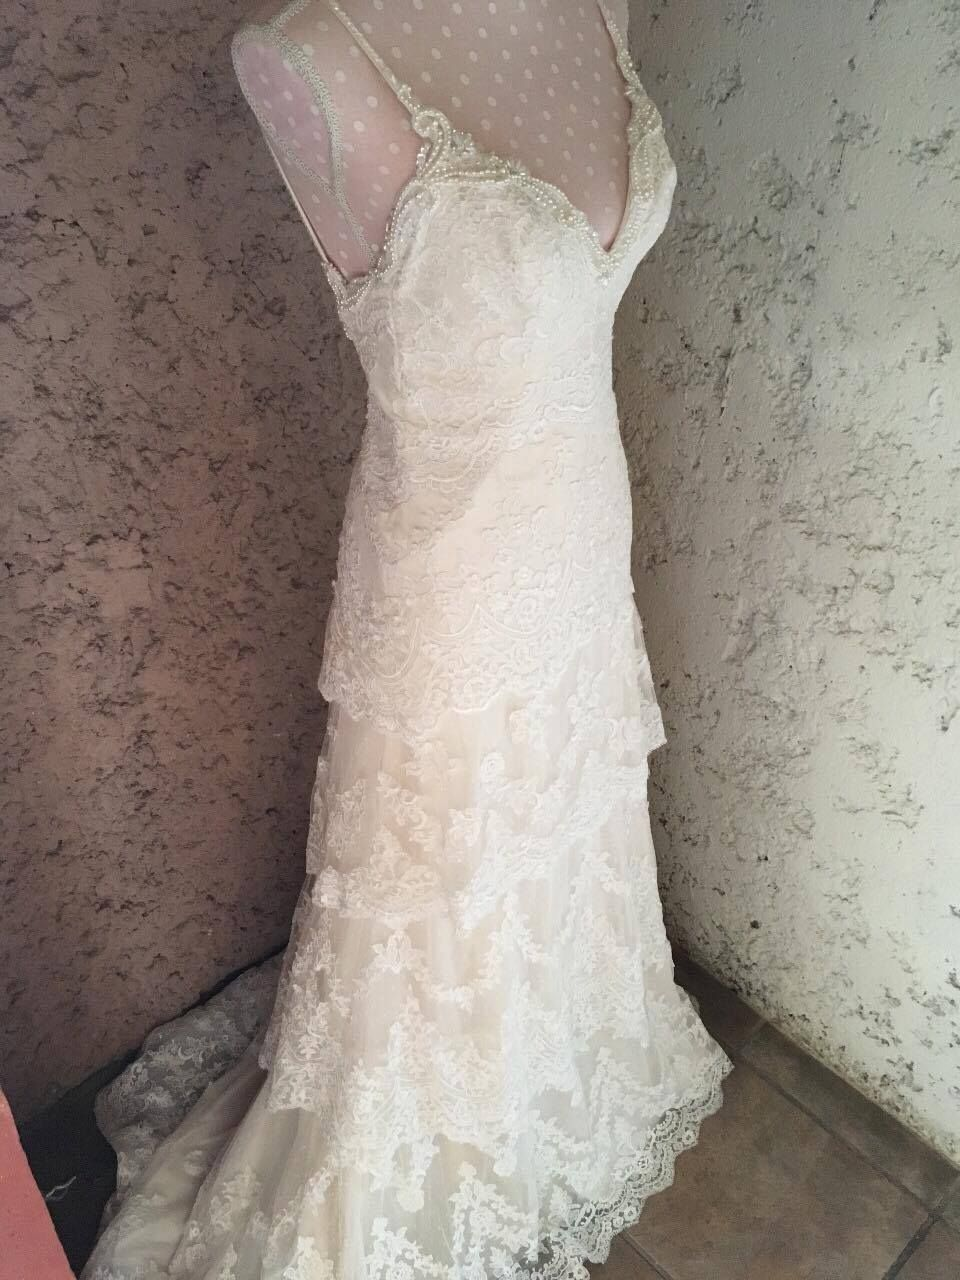 Cool amazing wedding dress ivory layers lace spanish or